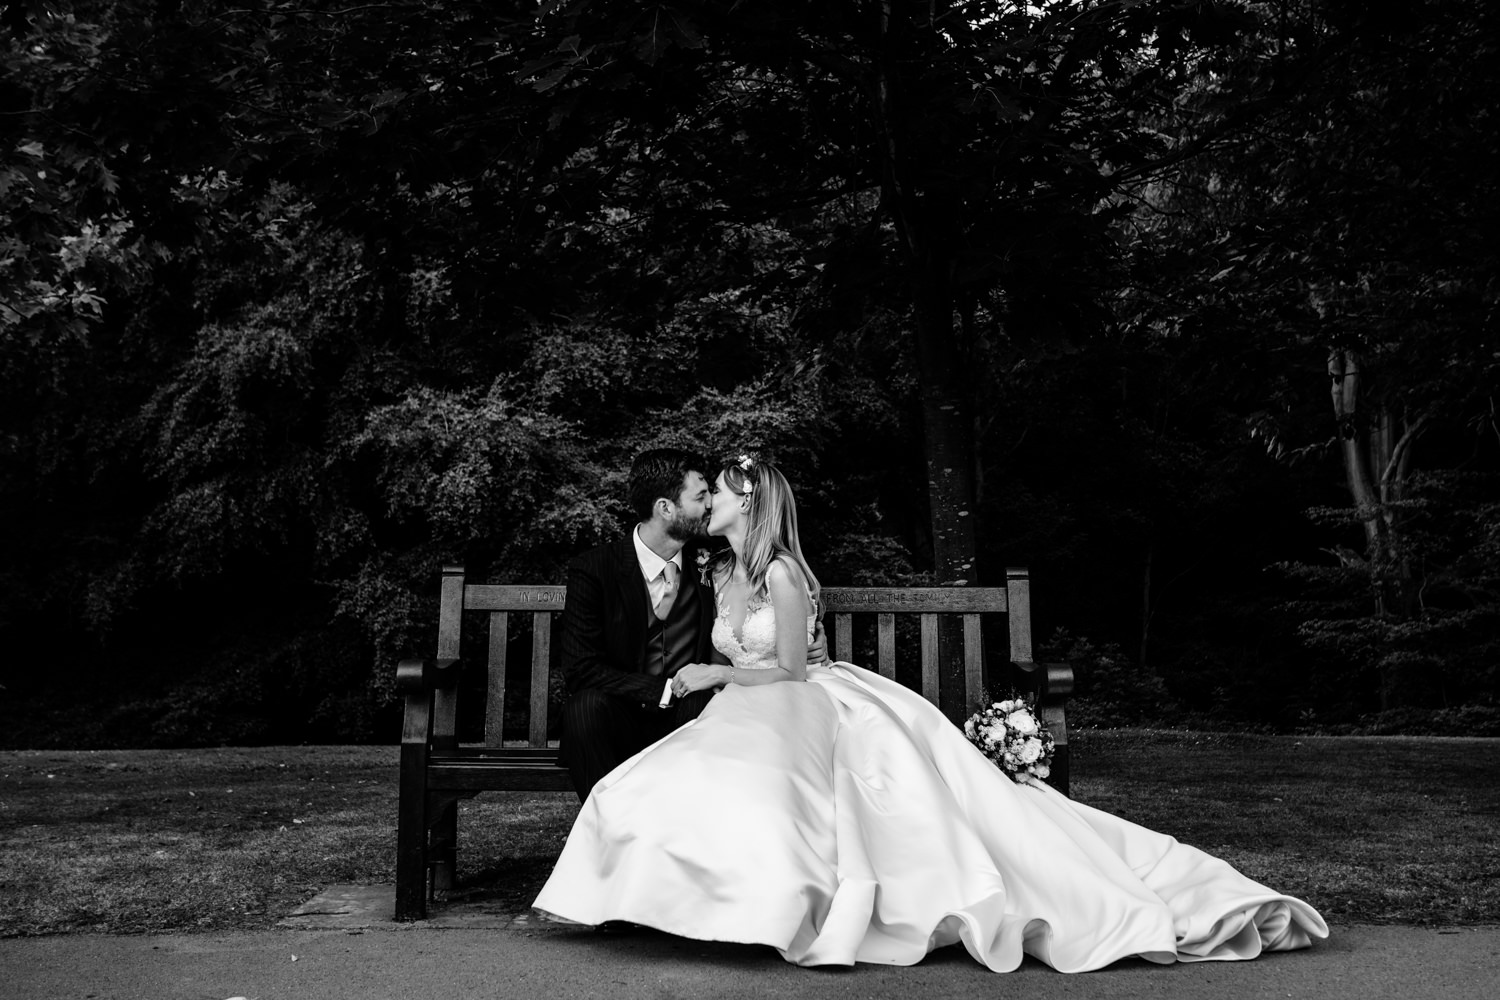 Romantic kiss between a bride and groom, weddingphotographer Whirlowbrook Hall Sheffield